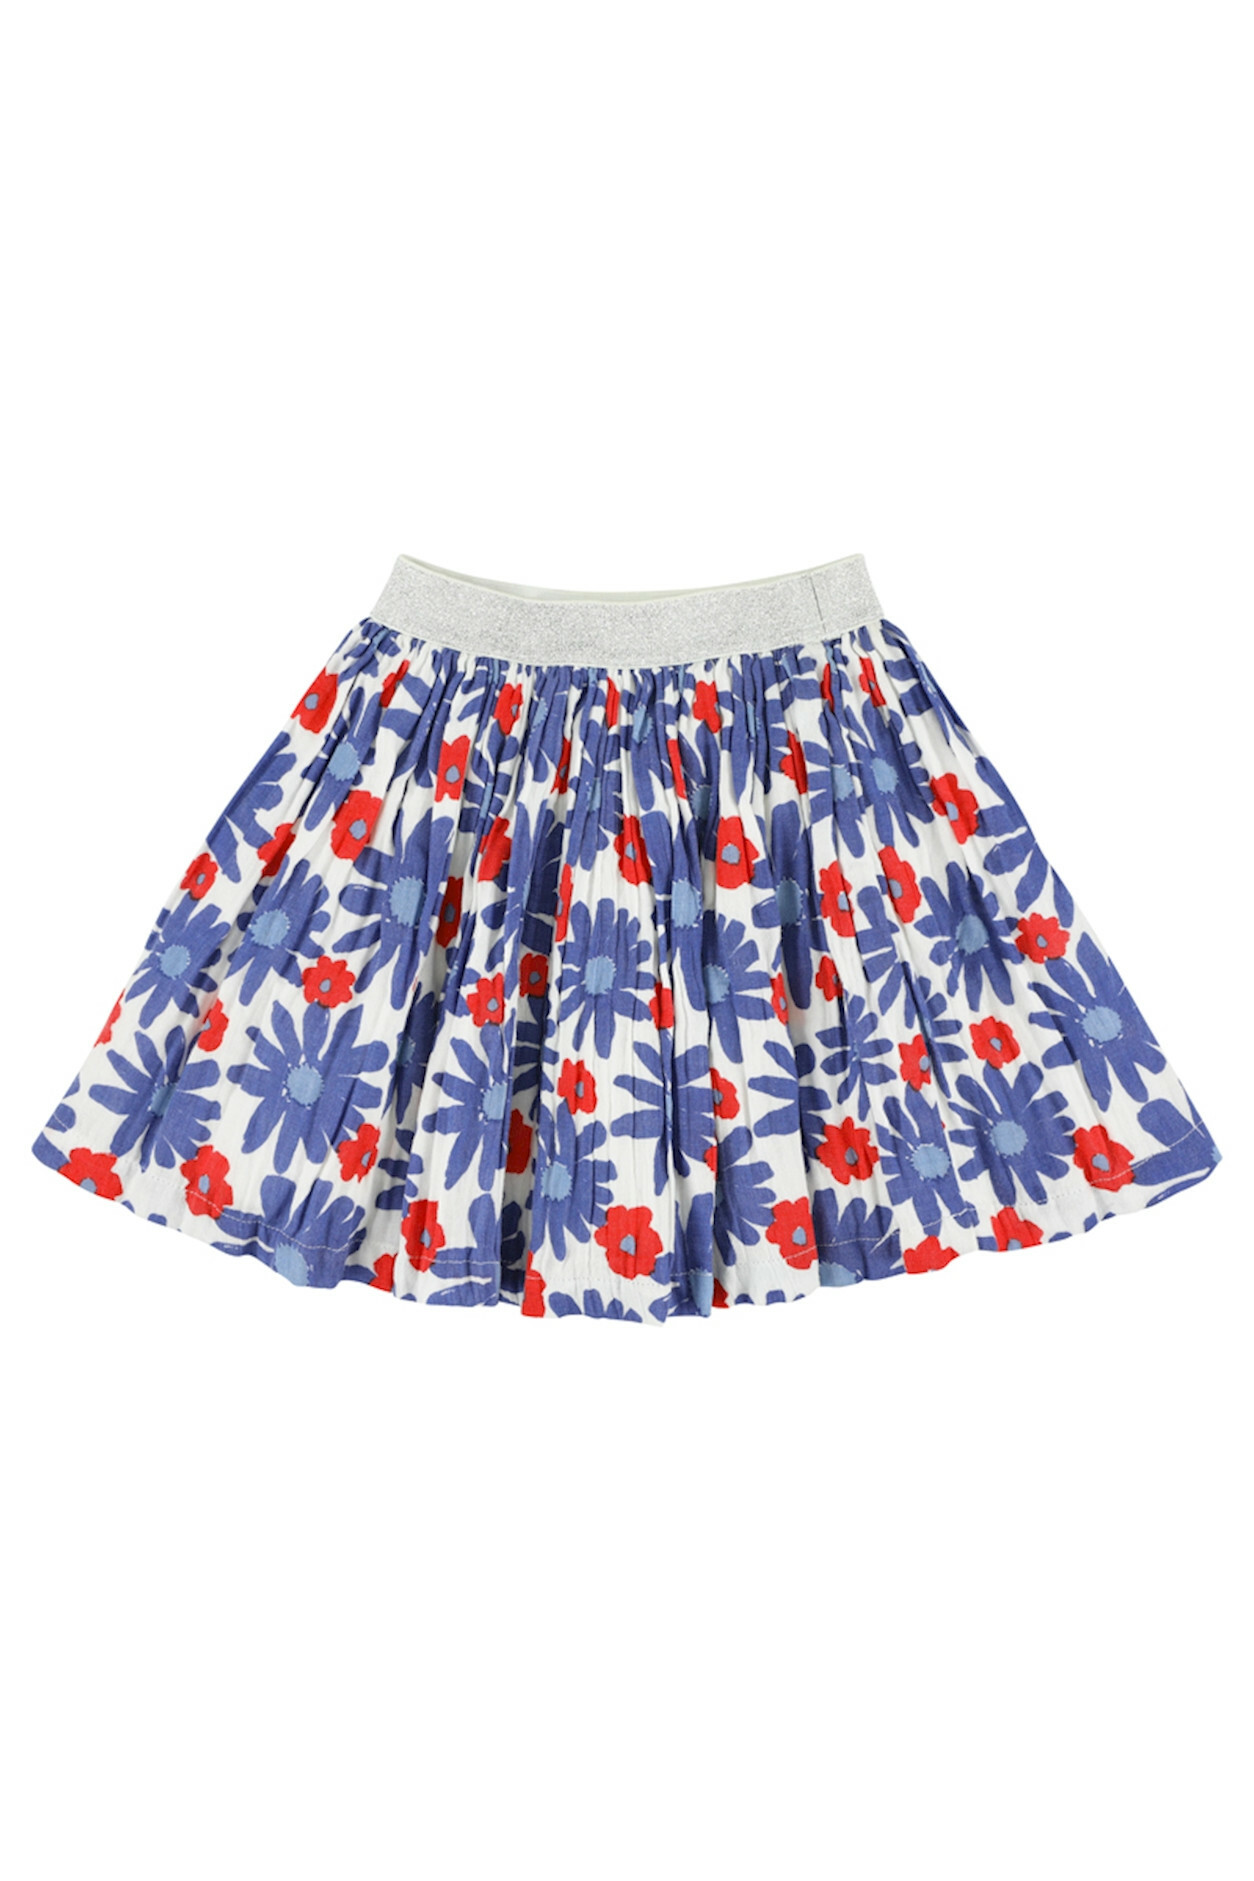 Adele Skirt - flower-power